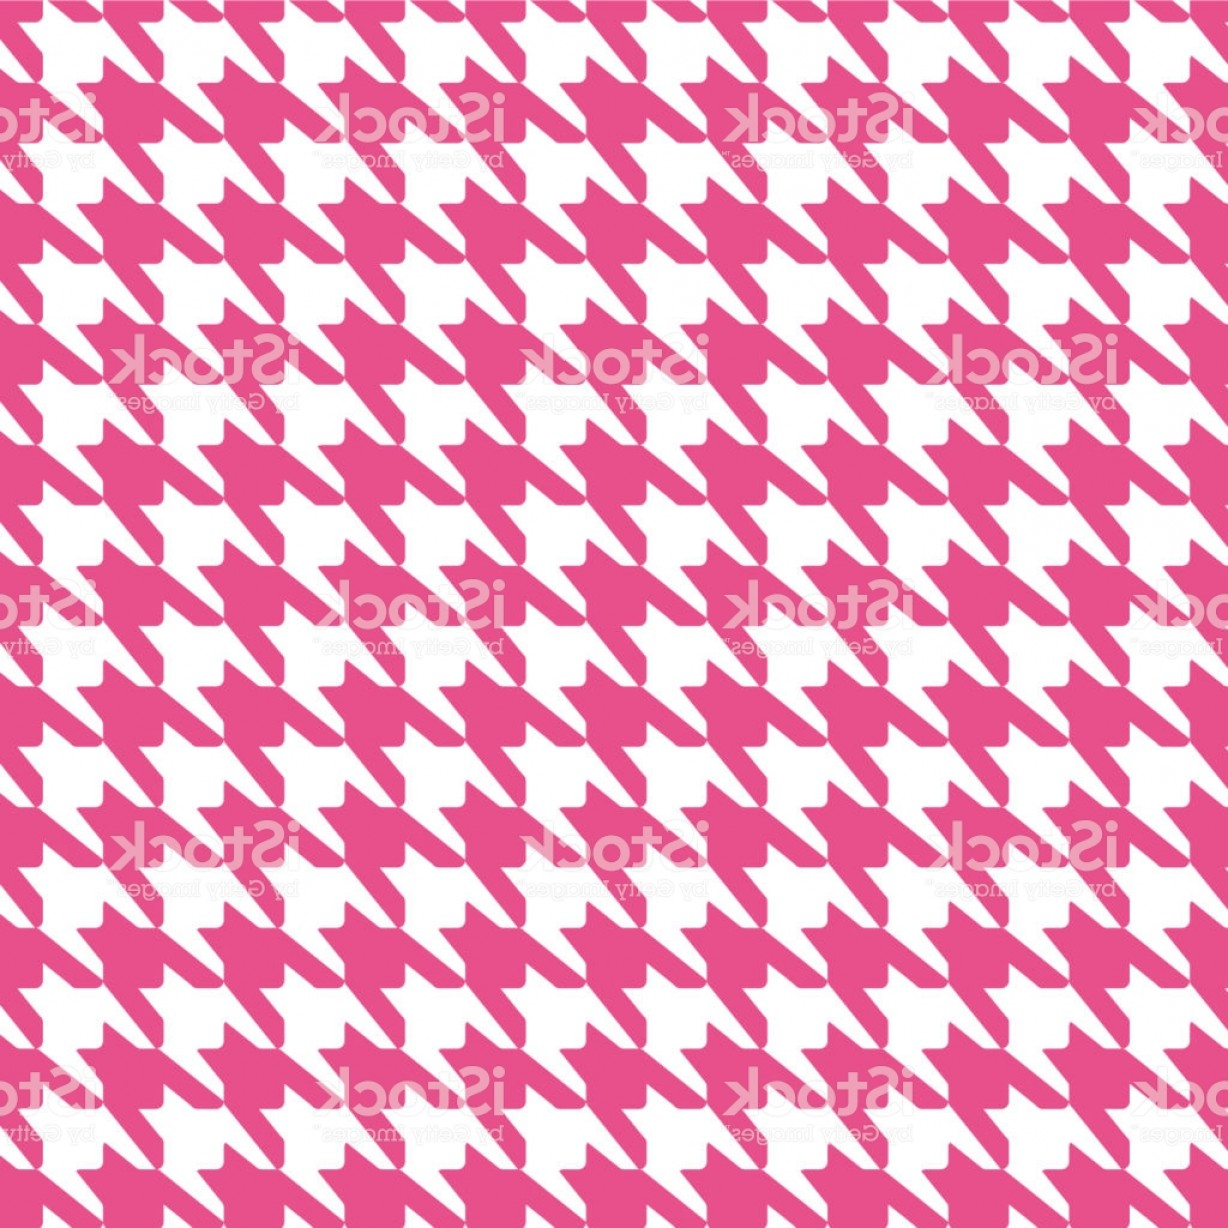 Pink And Black Houndstooth Vector: Houndstooth Pattern Pop Style Vector Pink Gm